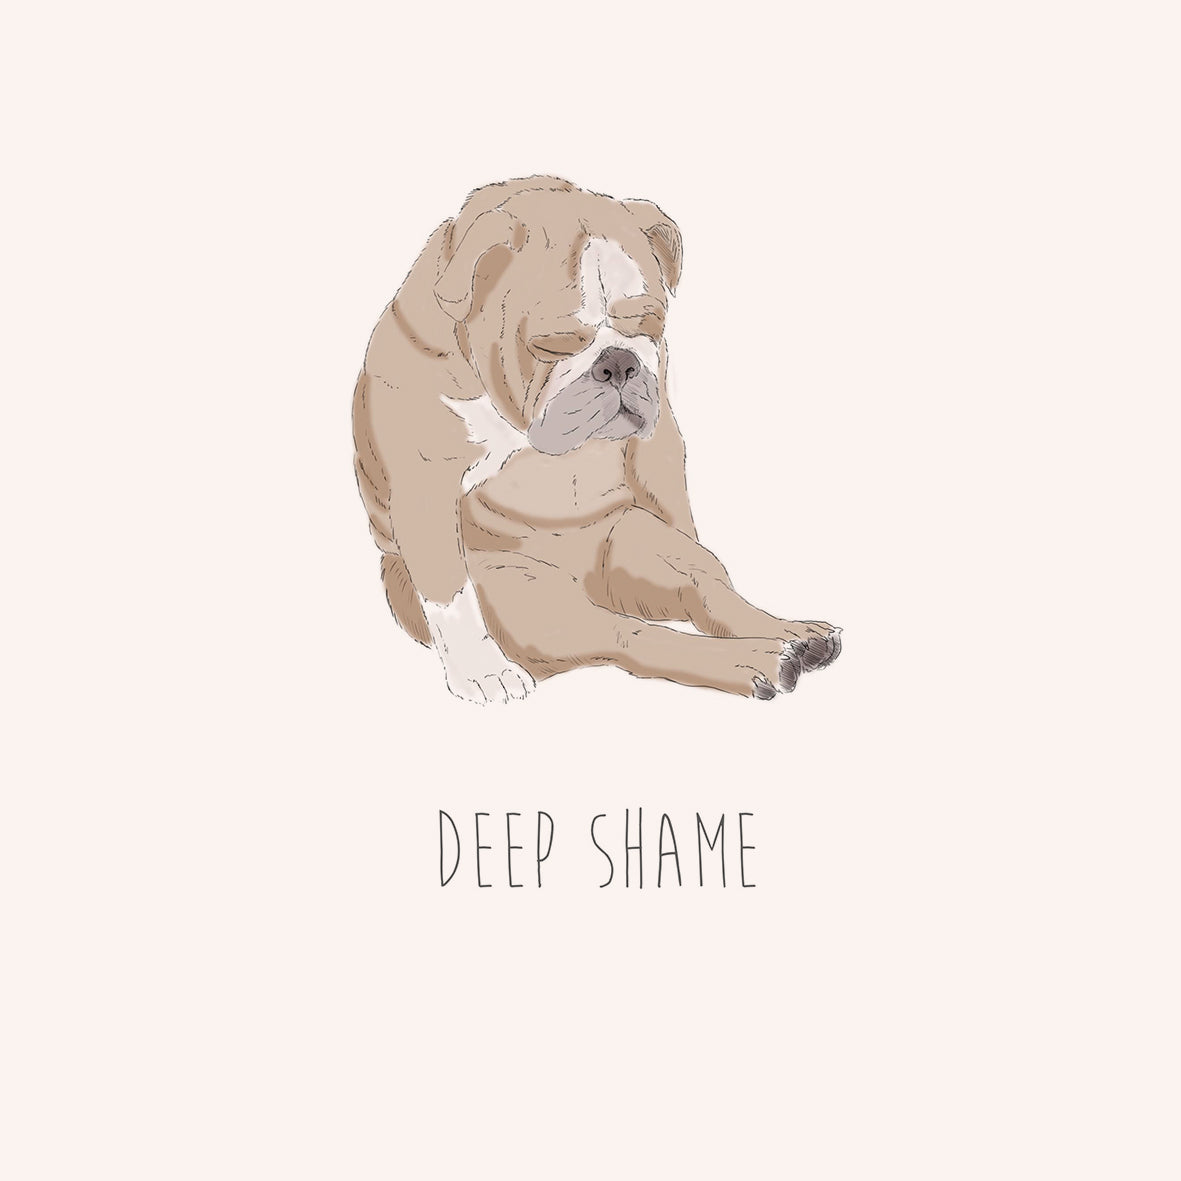 Deep Shame – English Bulldog